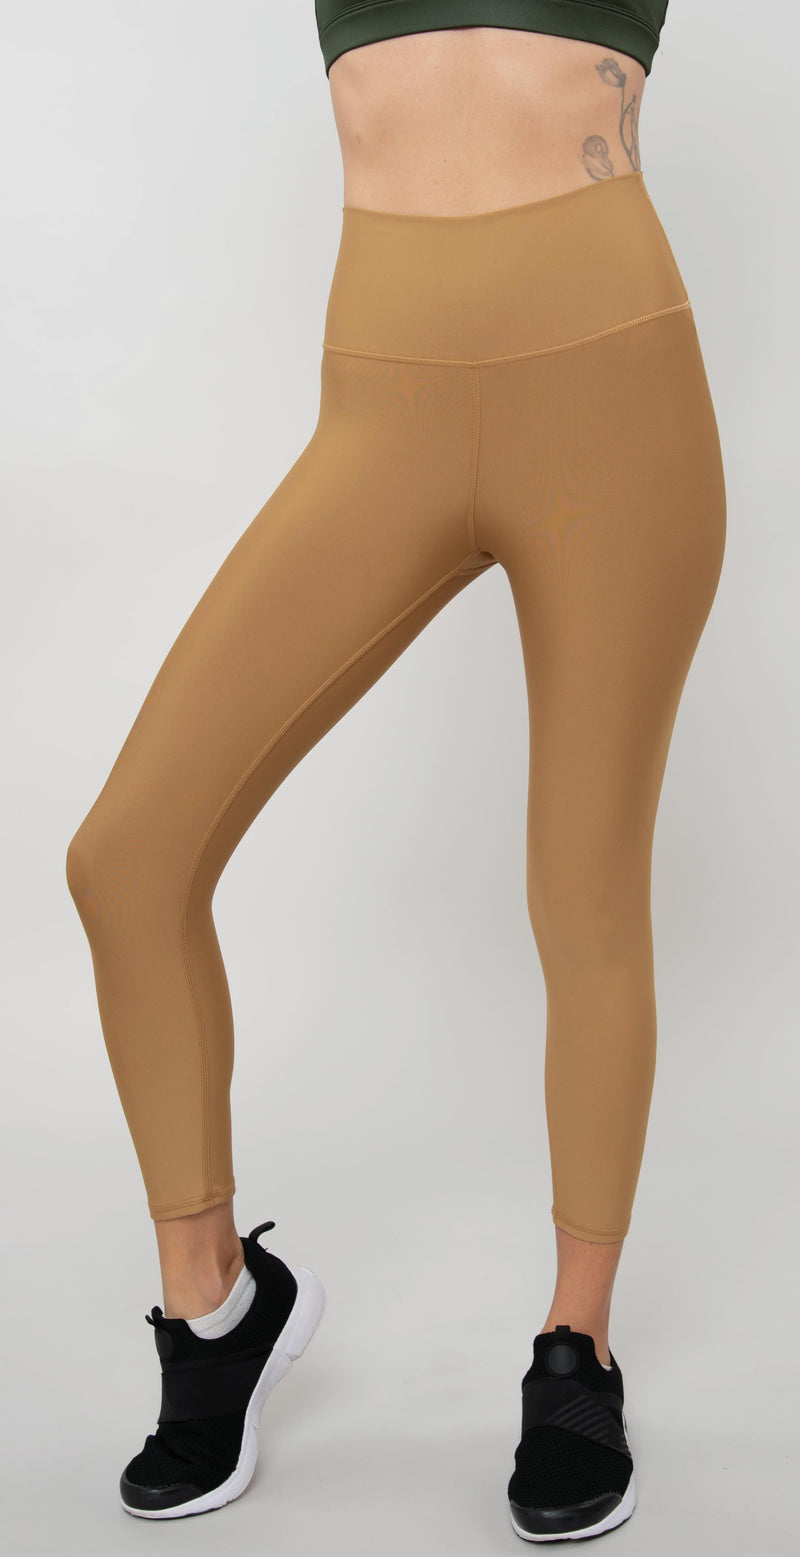 Alo Yoga High-Waist Airlift Capri Caramel